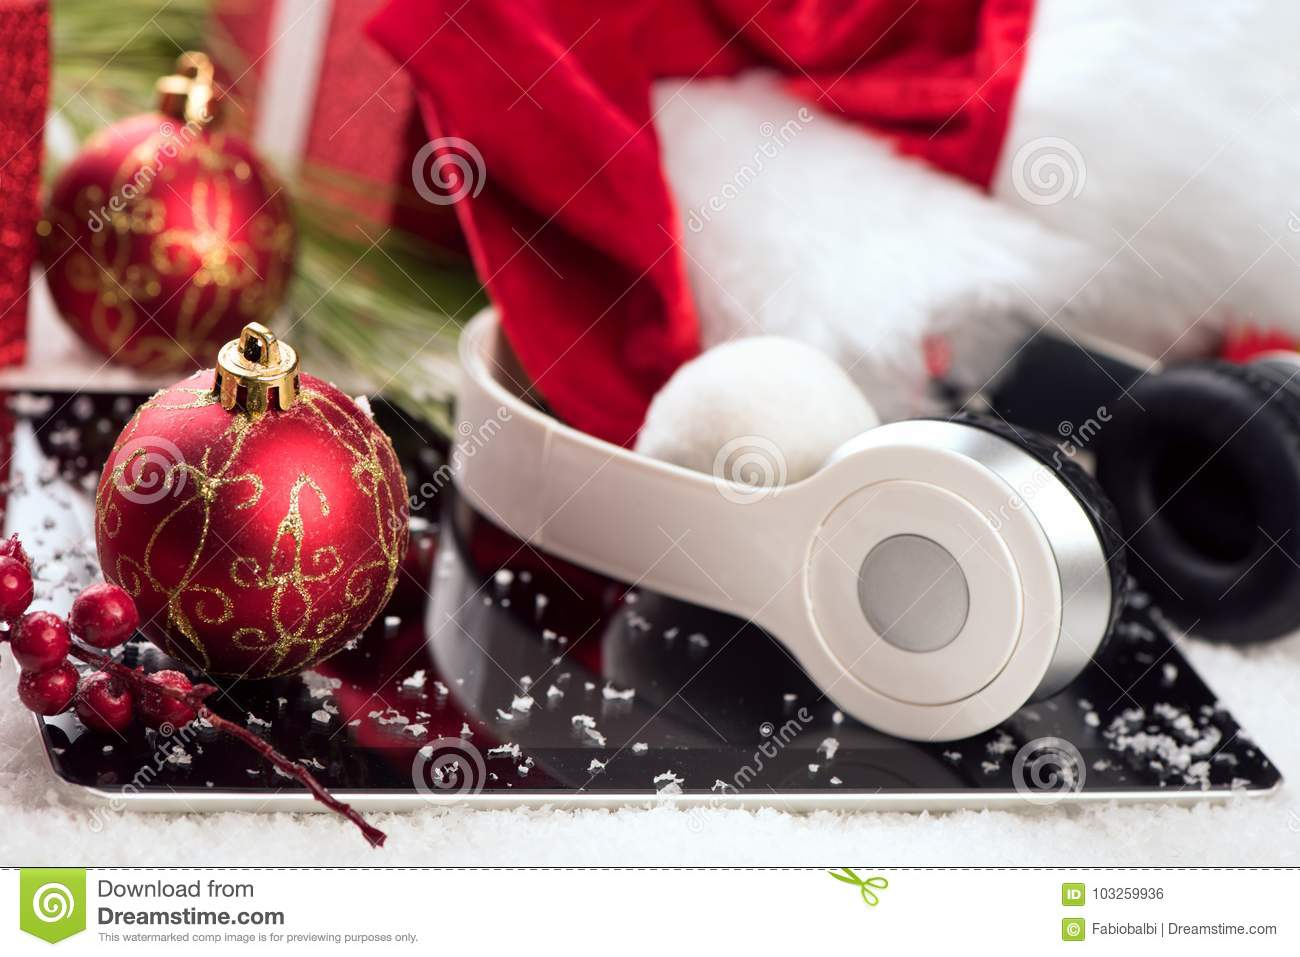 Best Christmas gifts idea stock photo. Image of contact - 103259936